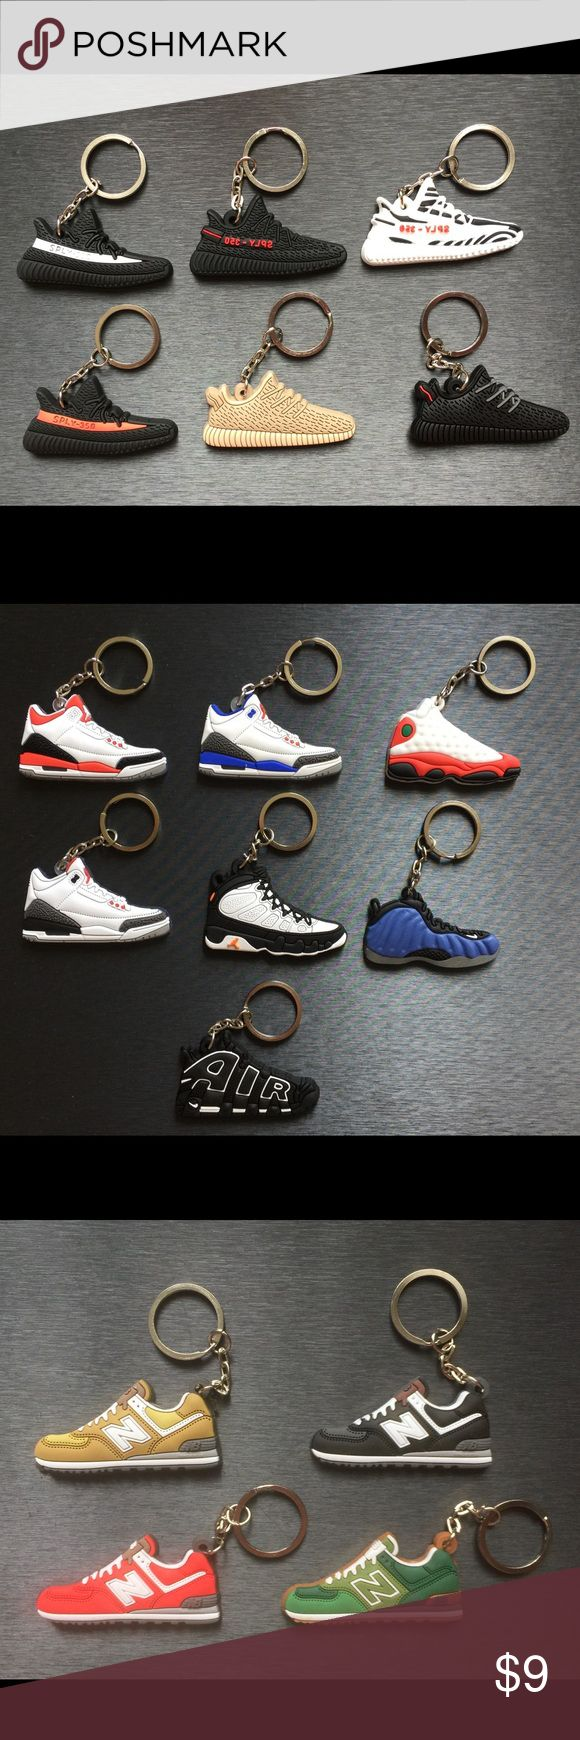 Sneaker Keychains *ANY 4 OF YOUR CHOICE** All your favorite most hyped sneakers are now available in keychains !! These keychains make the perfect novelty gift for any occasion. Silicone 2D flat keychain/ YEEZY Adidas Air Jordan Nike Supreme/ bundle pricing available upon request- Serious offers only Please&Thank You 😊 FREE surprise Sneaker sticker with purchase. adidas Accessories Key & Card Holders